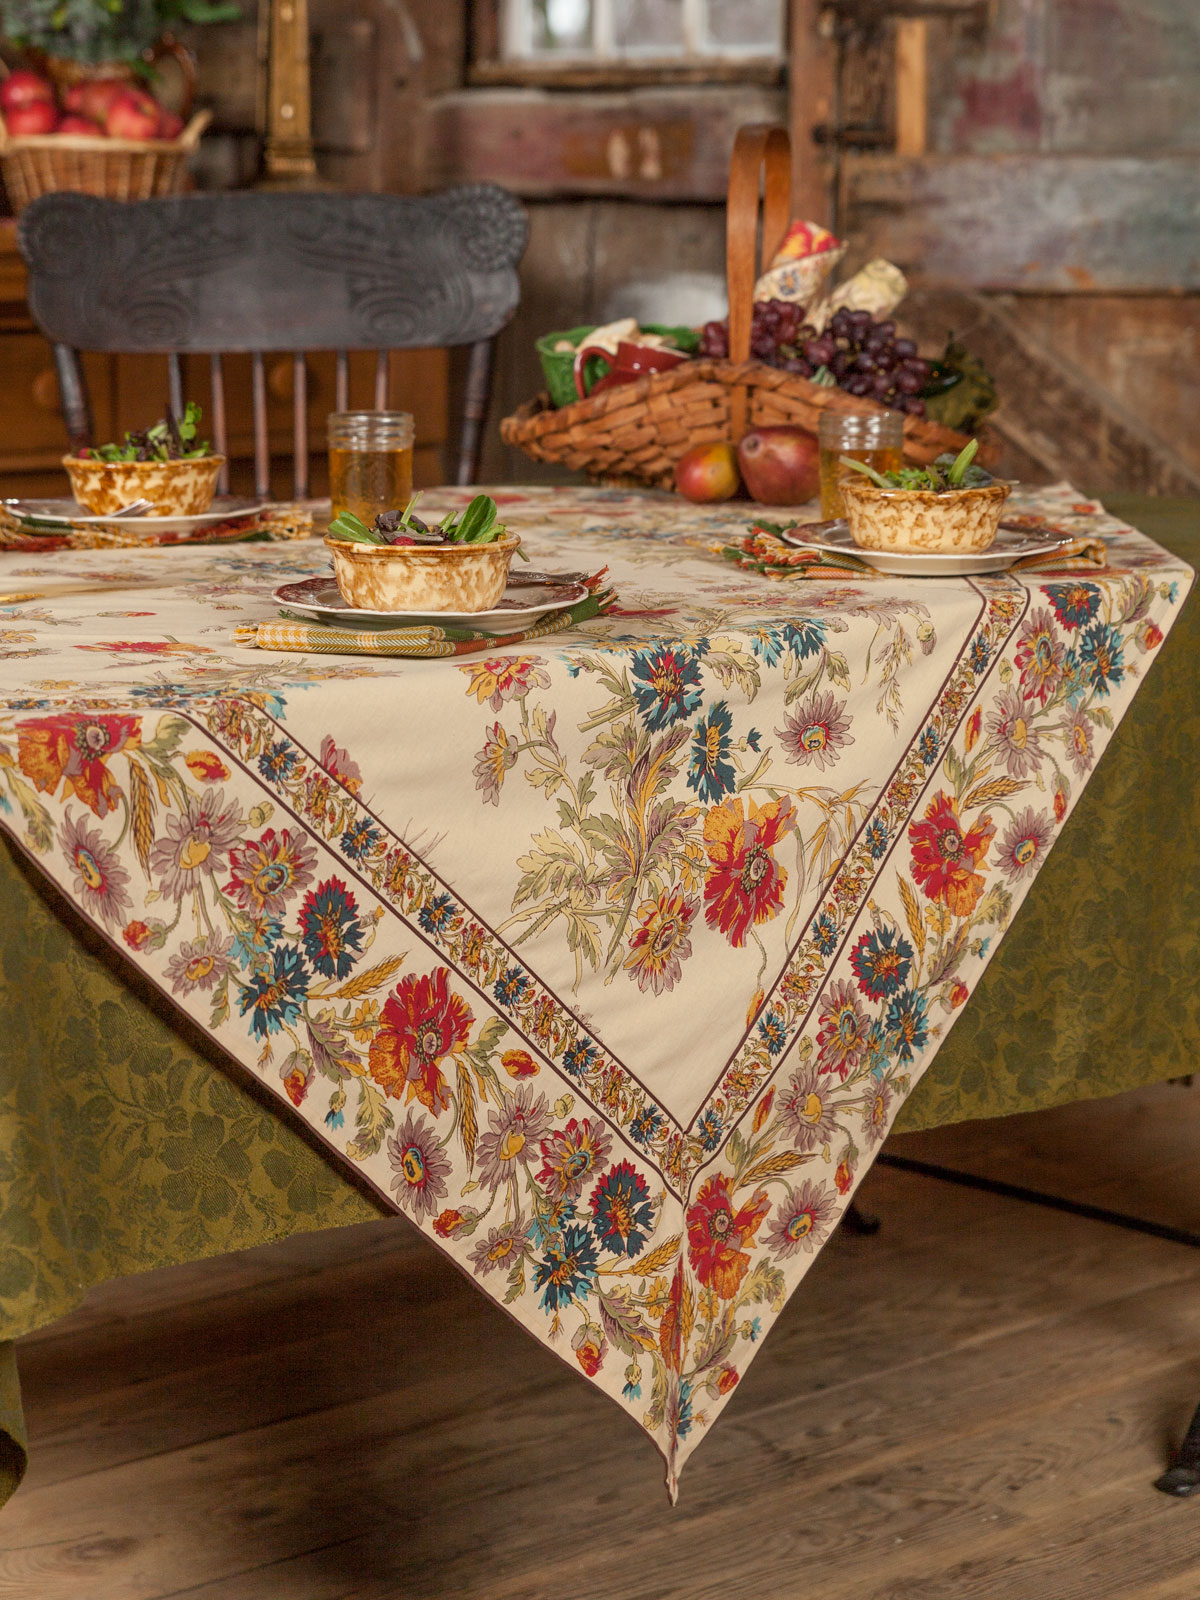 Wildflowers tablecloth linens kitchen tablecloths for Table linens